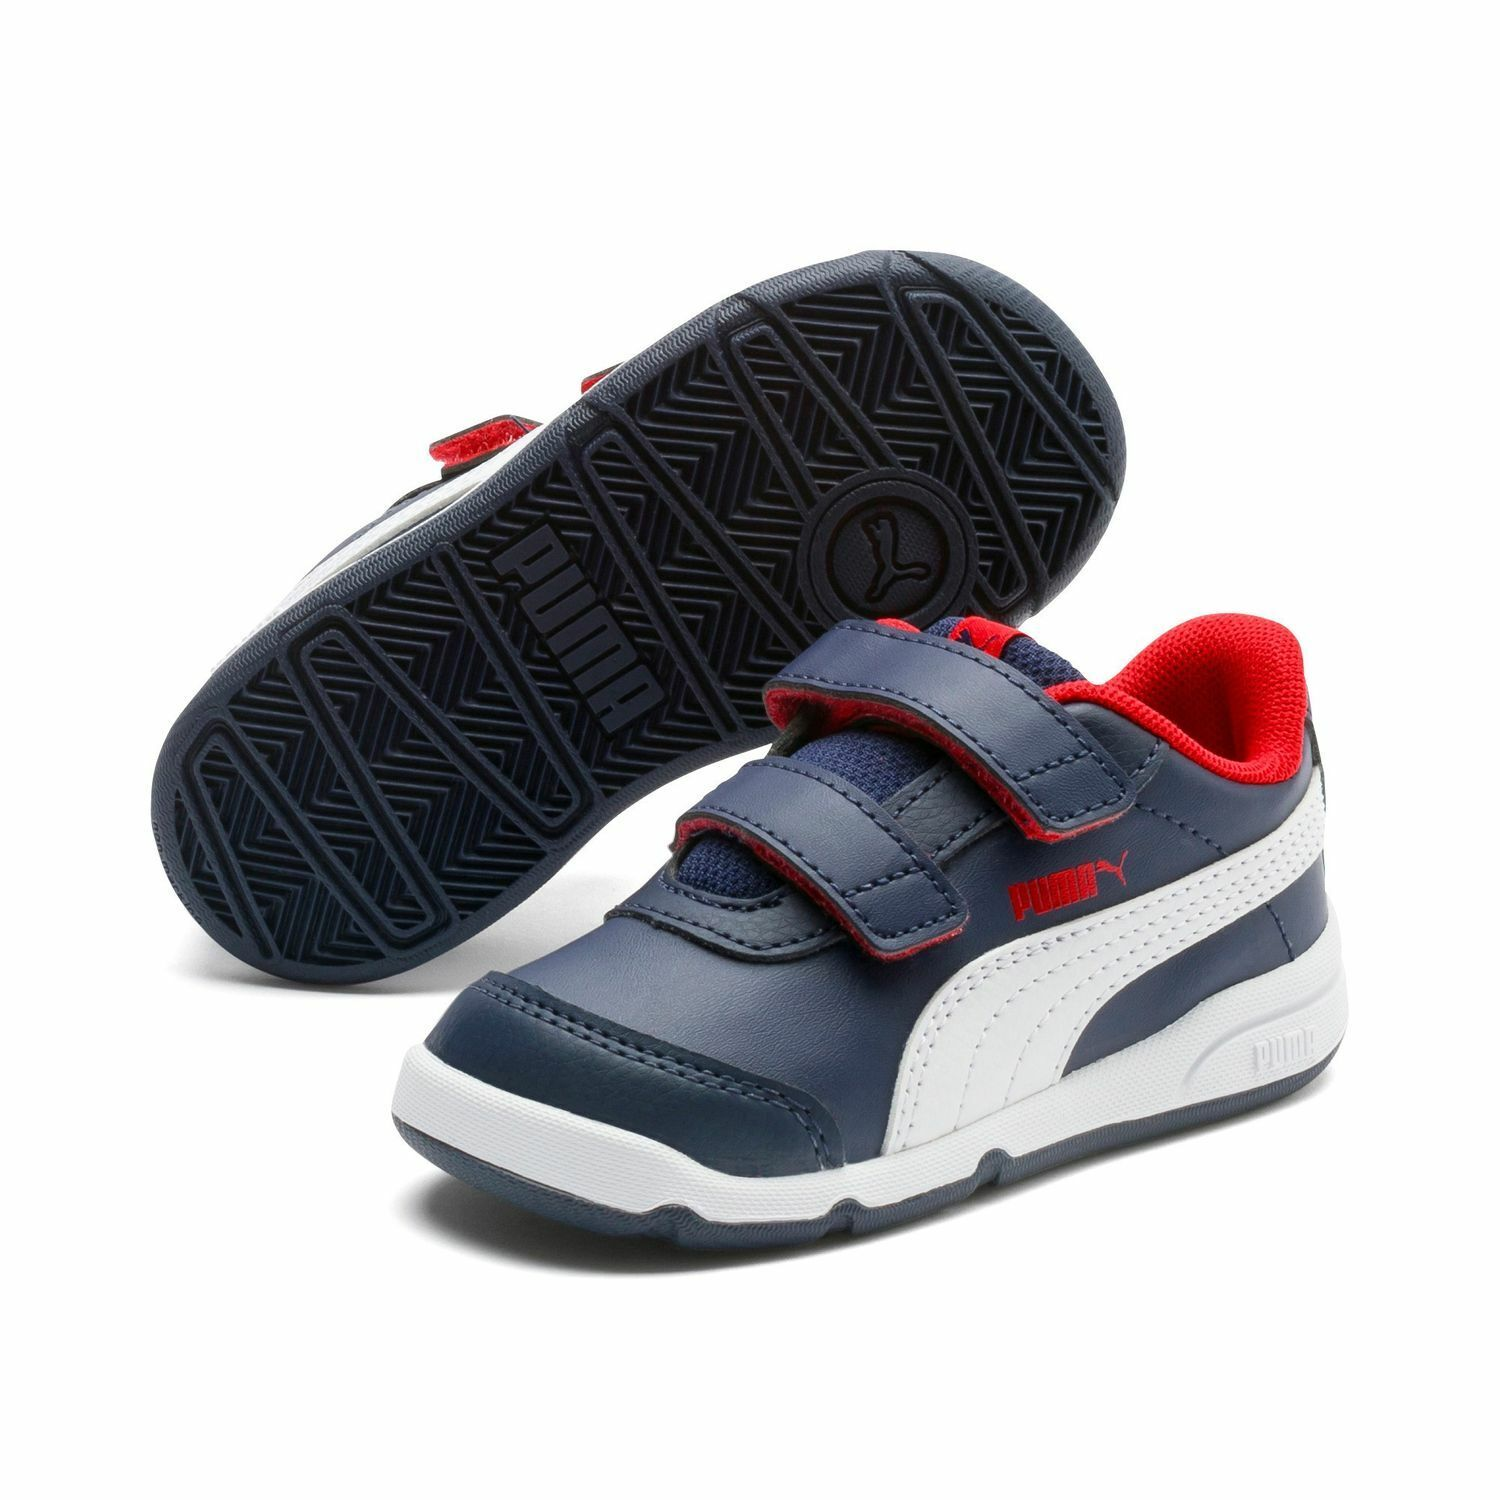 Puma Stepfleex 2 Sl Ve Inf Children Baby Shoes Trainers 192523 Blue